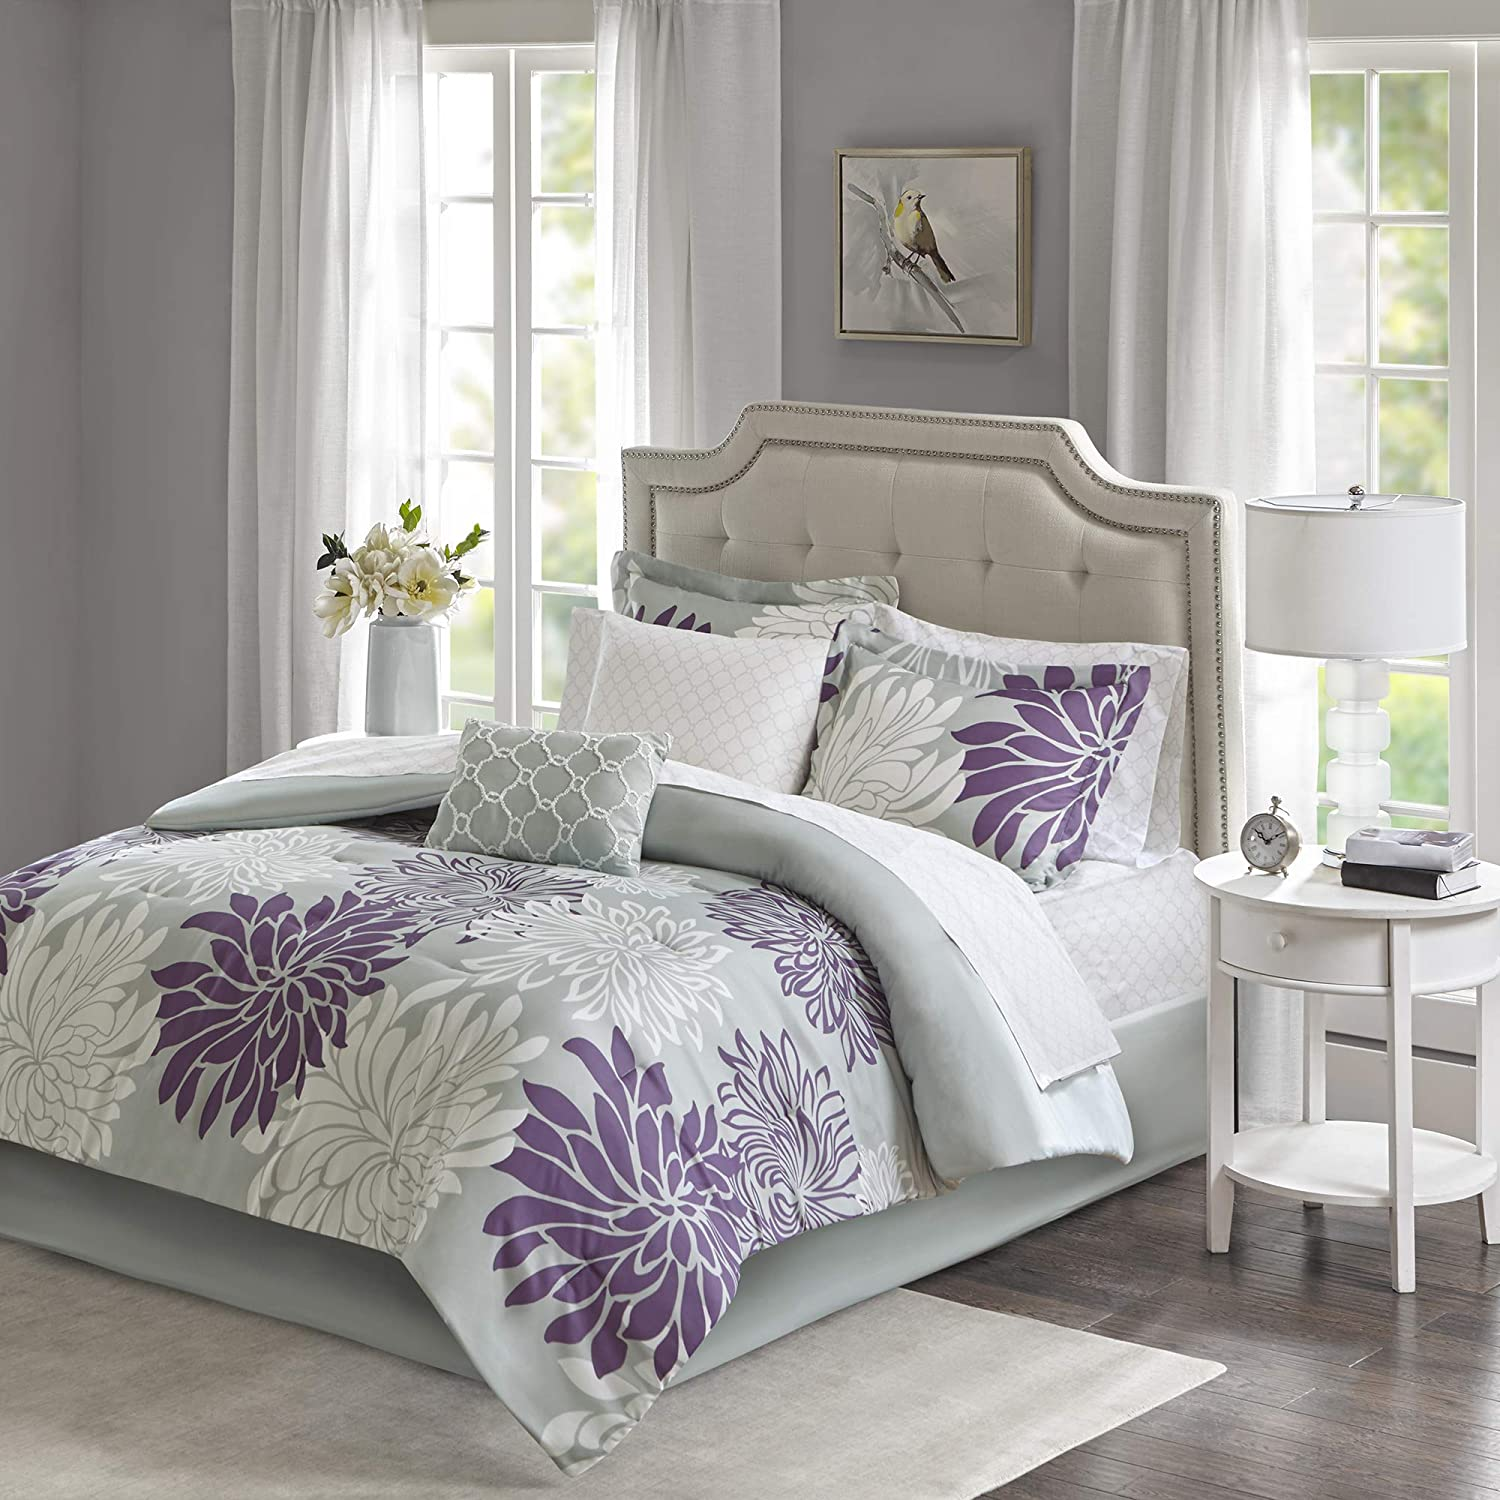 Madison Park Essentials Maible Cozy New product Bed Las Vegas Mall with A Bag Comforter in